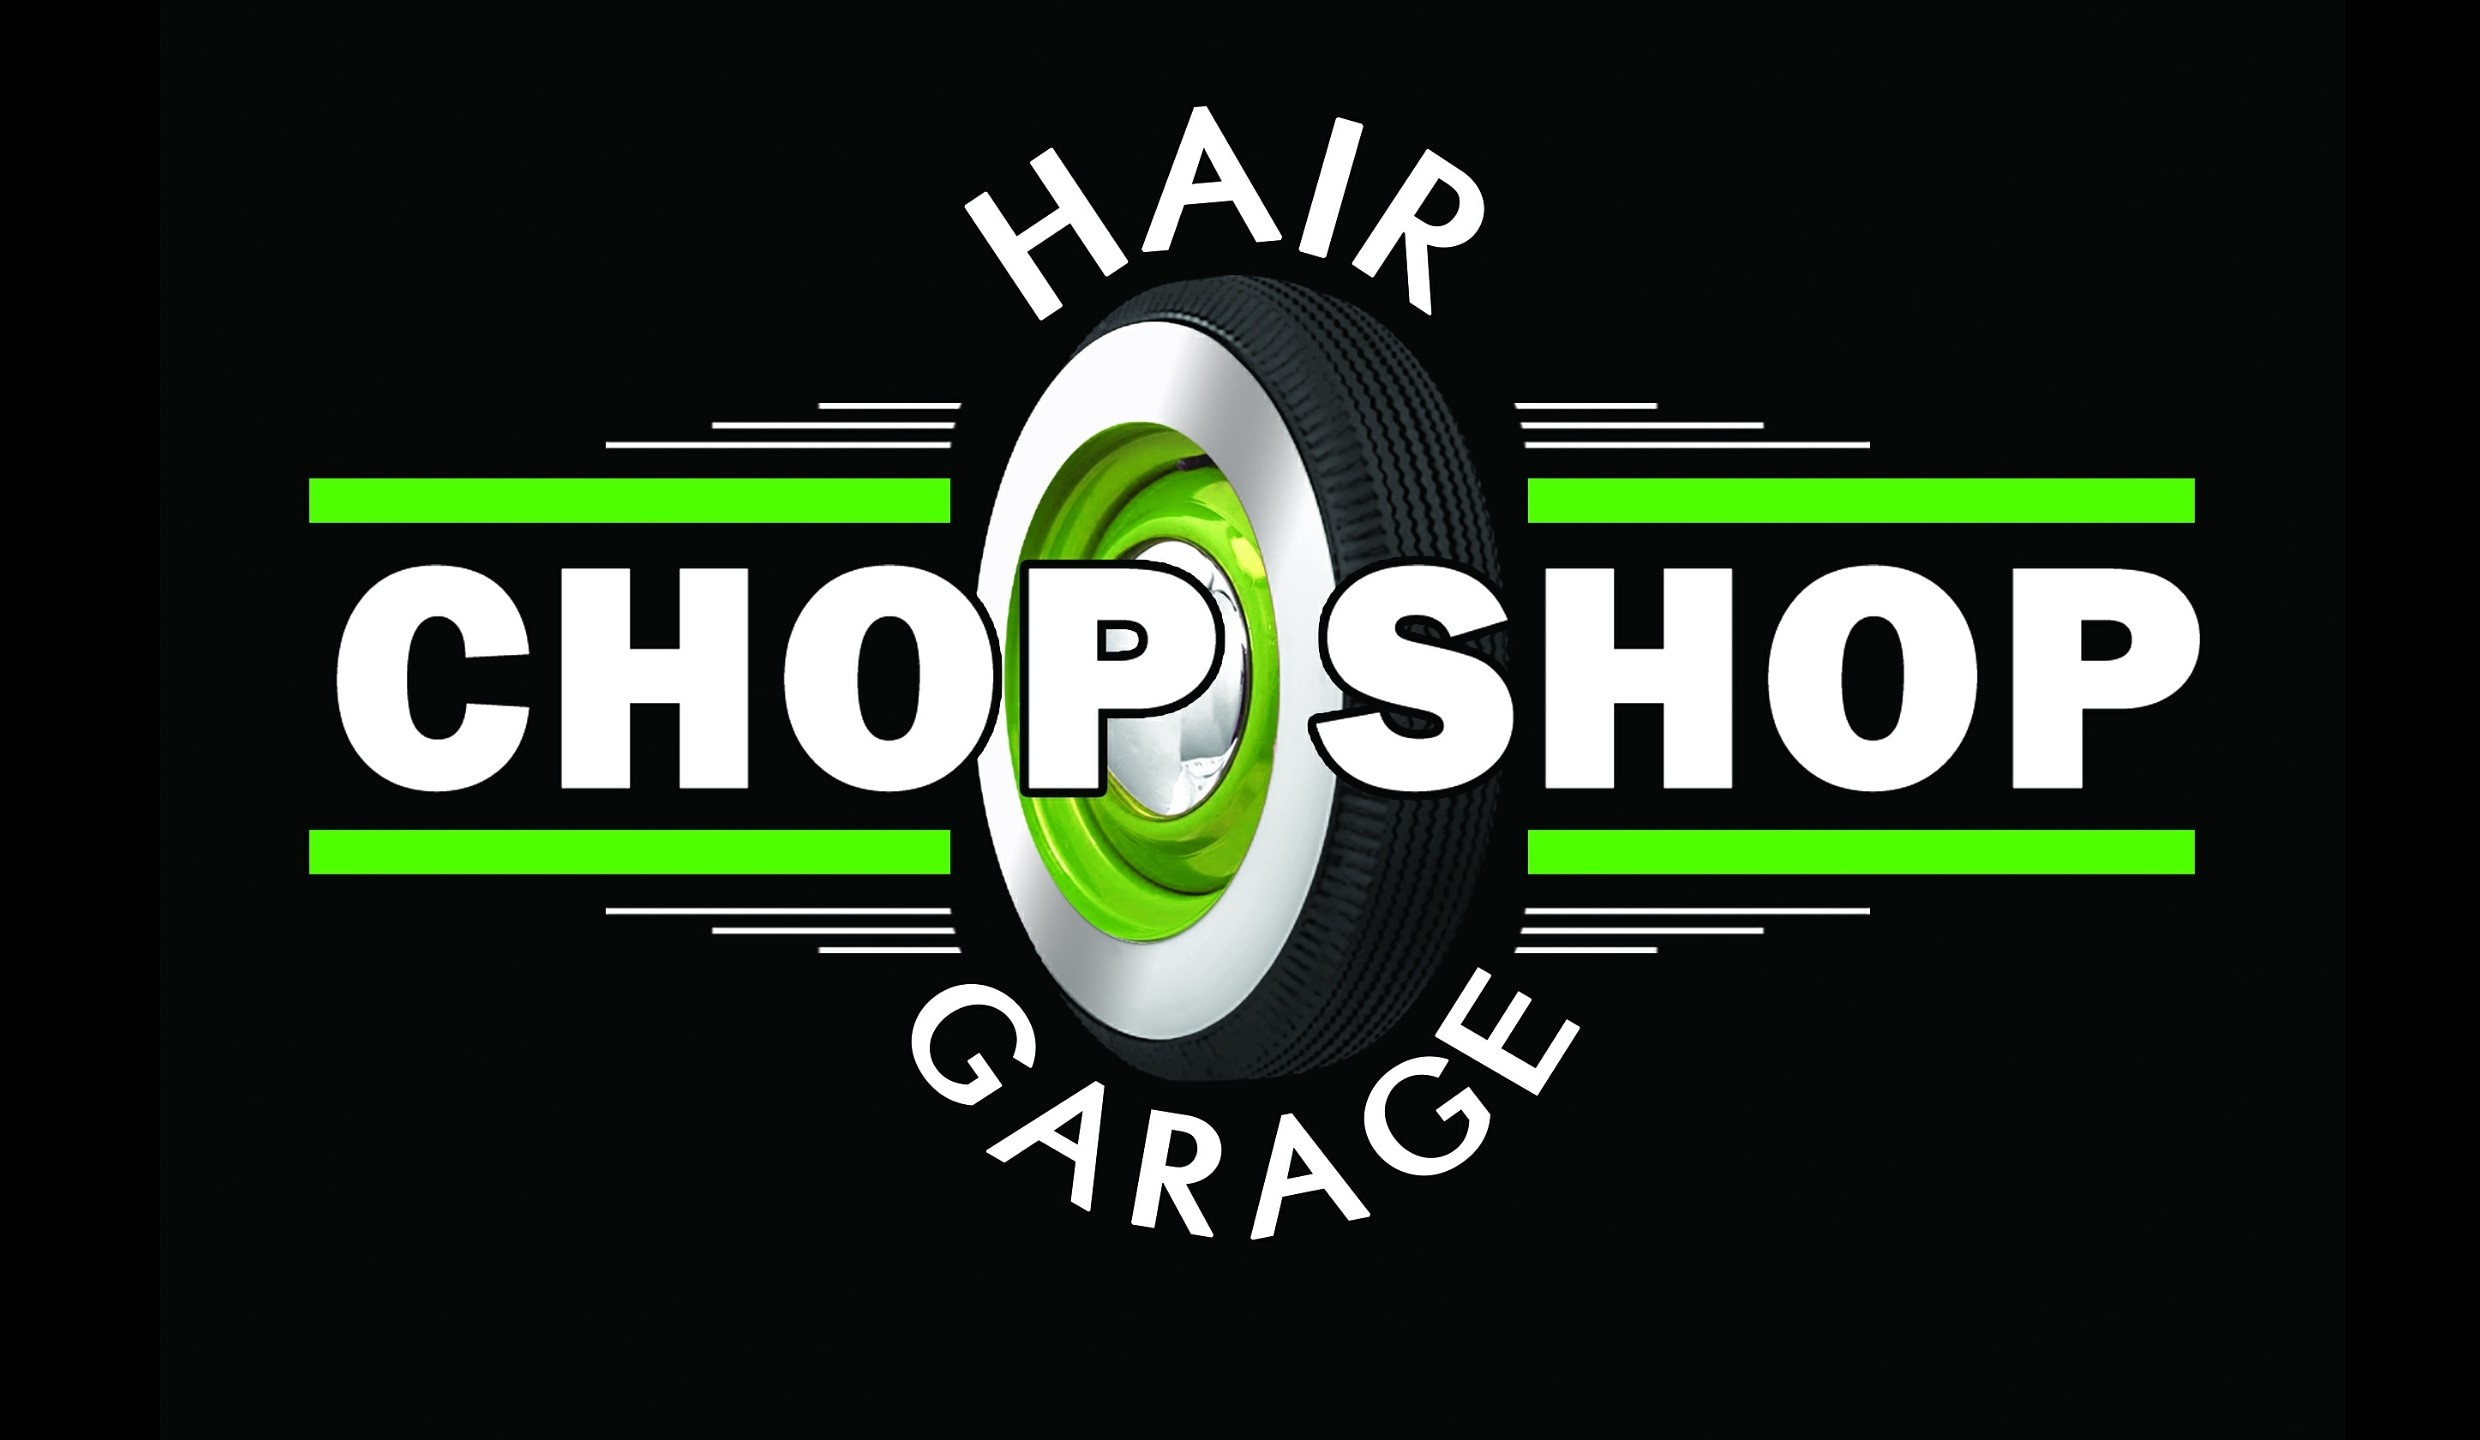 Chop Shop Hair Garage - 1540 US Highway 395 North775-782-7777